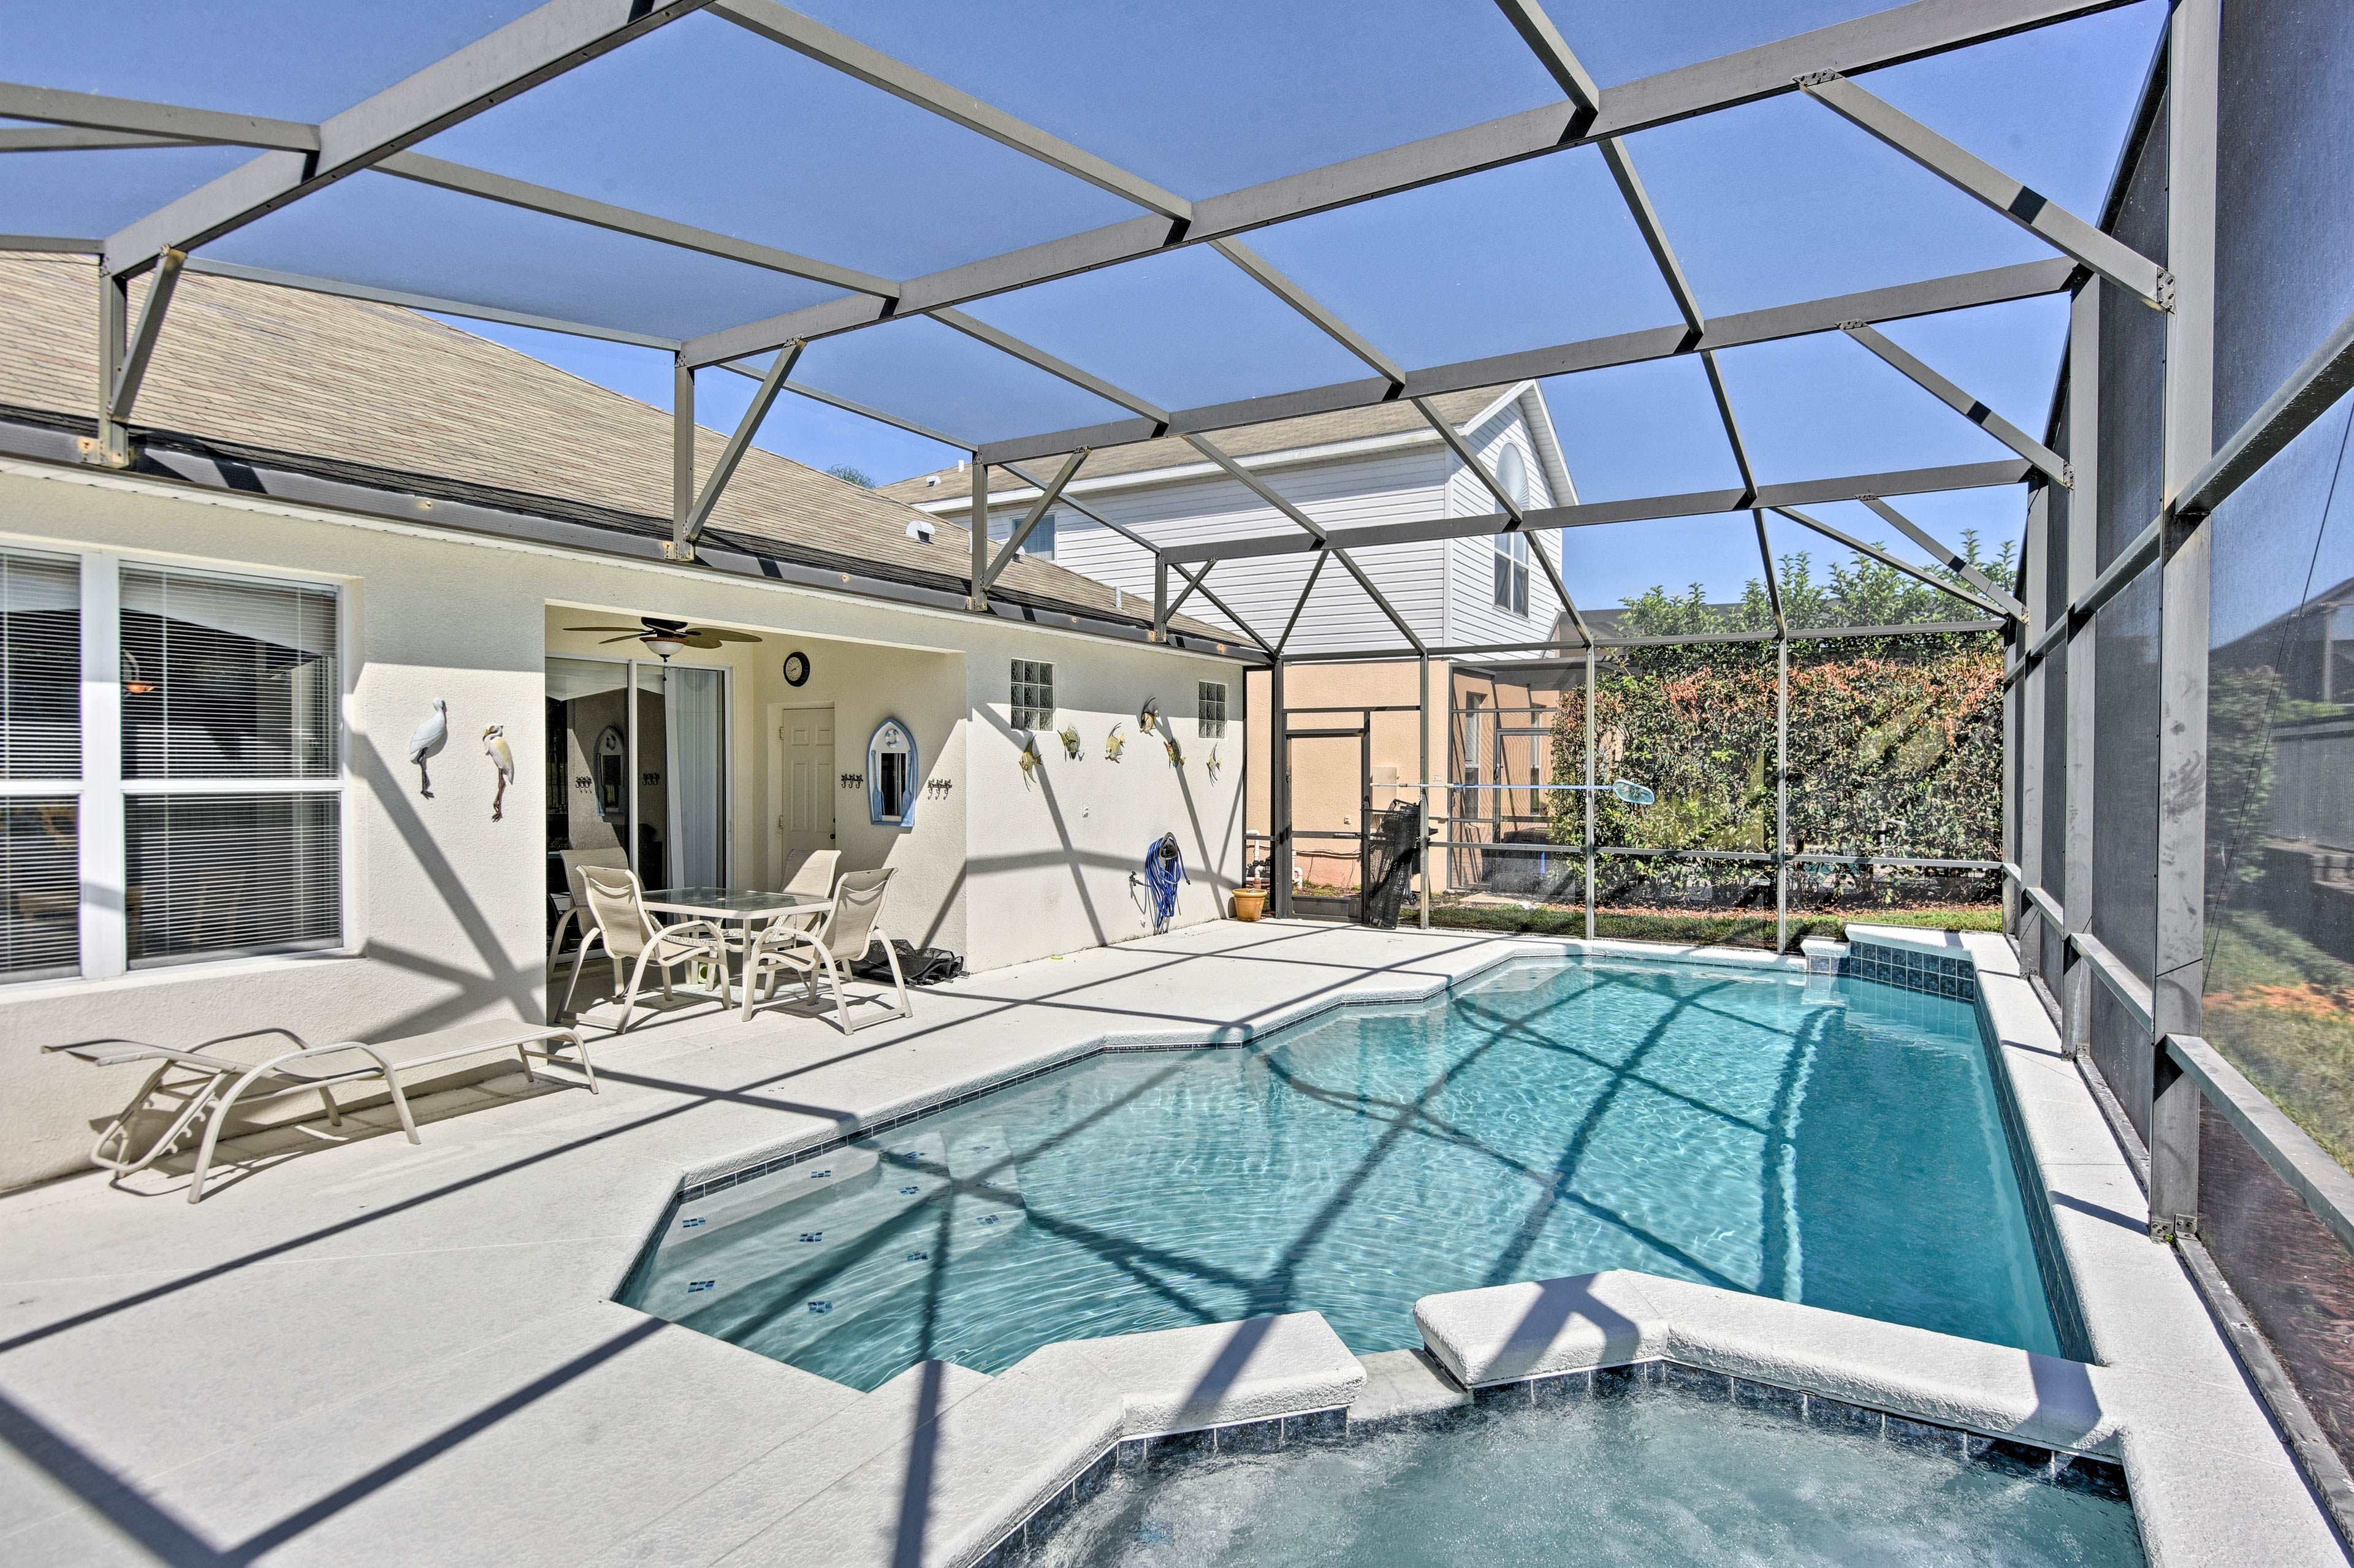 This 4-bedroom, 3-bath home for 9 guests boasts a private lanai and heated pool.